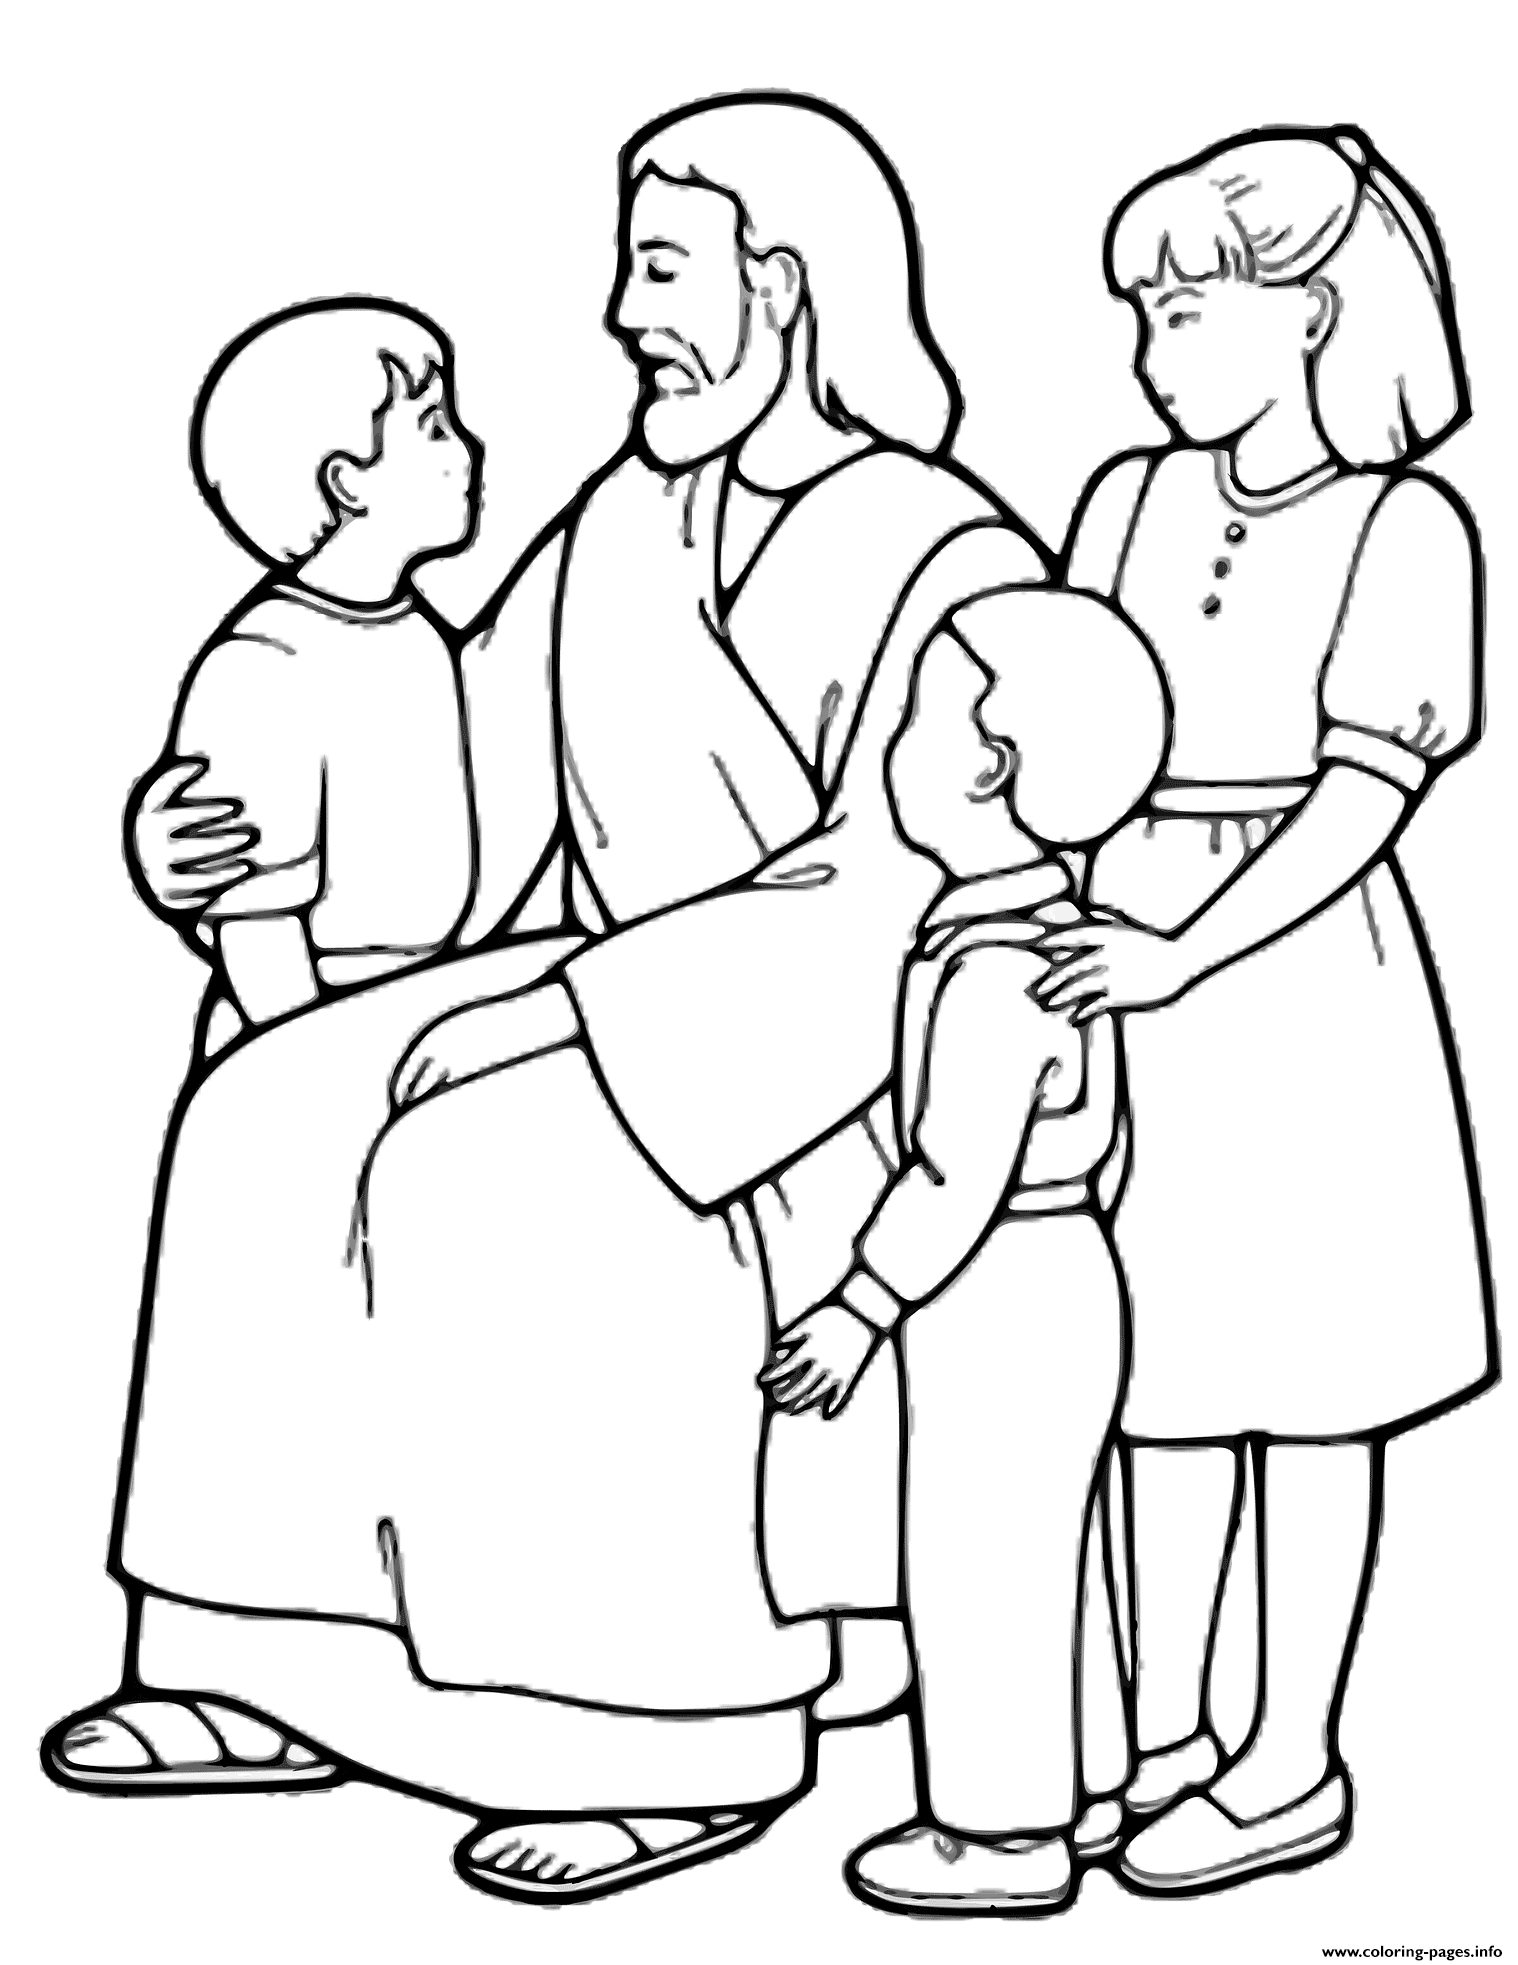 The Little Children And Jesus coloring pages